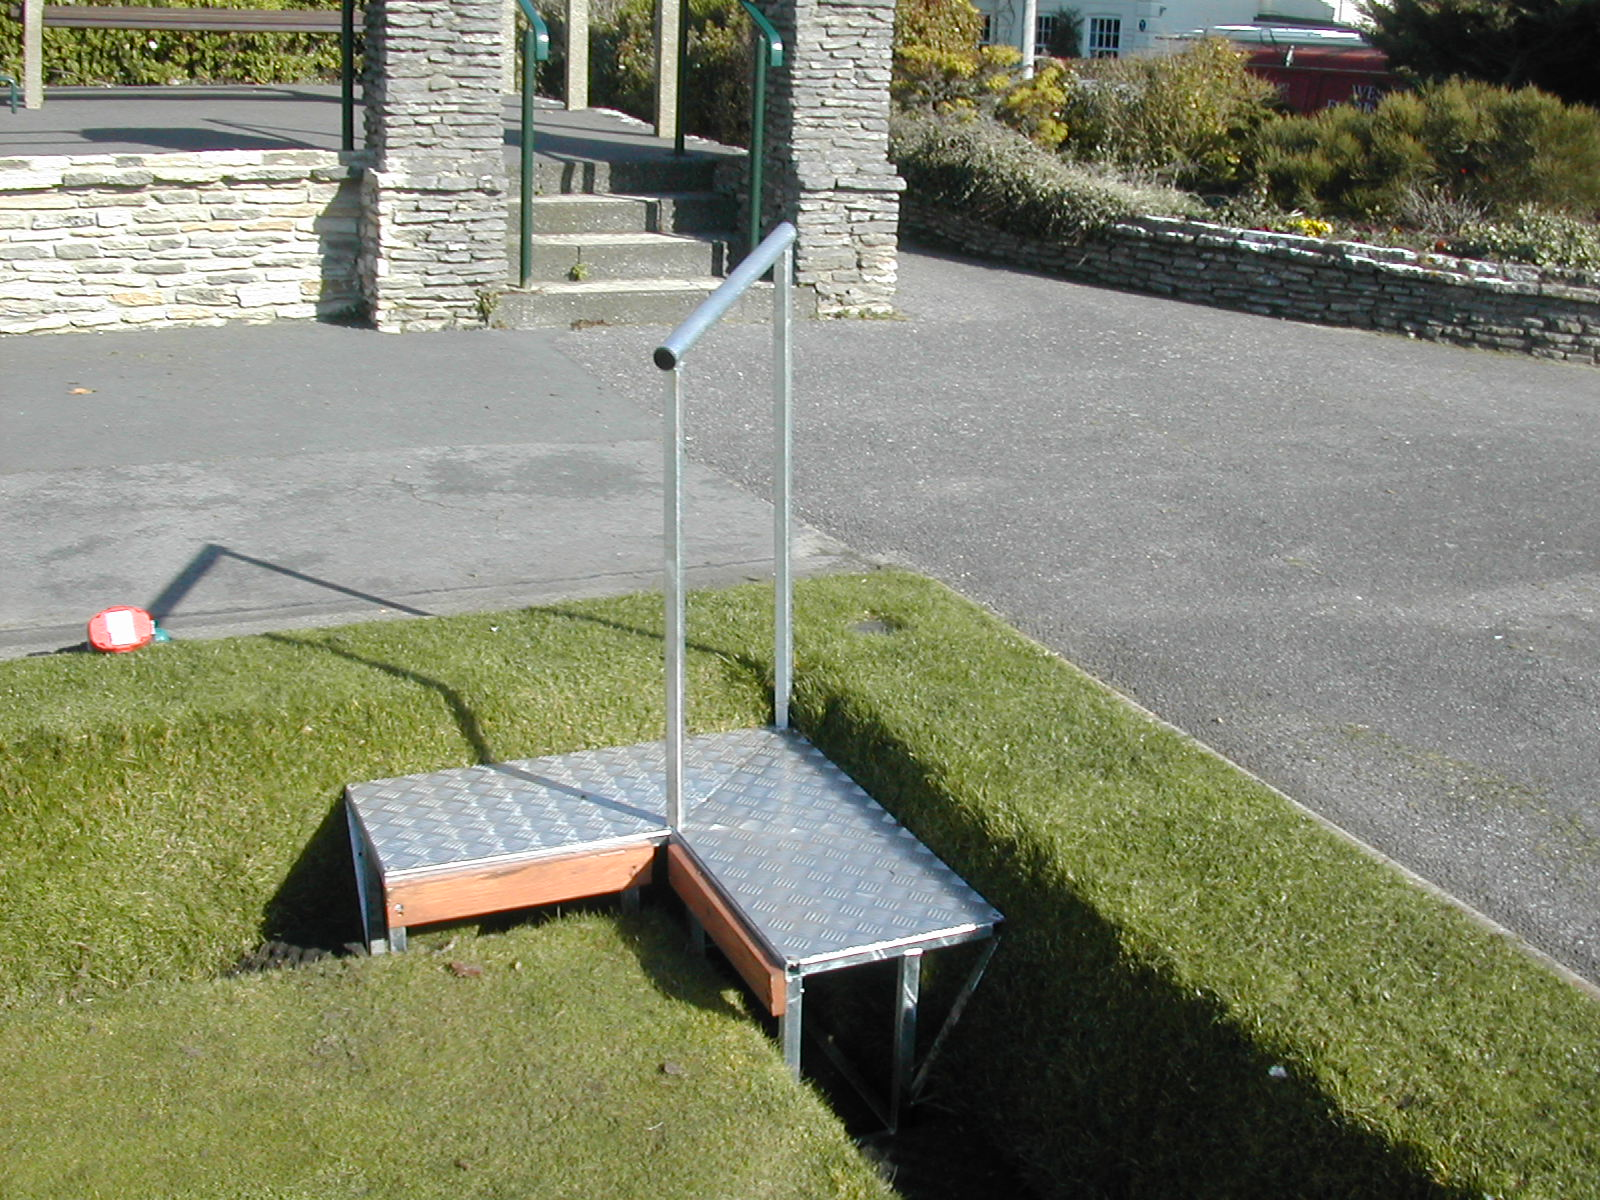 Bowling Green - Device for Getting Safely Across the Ditch